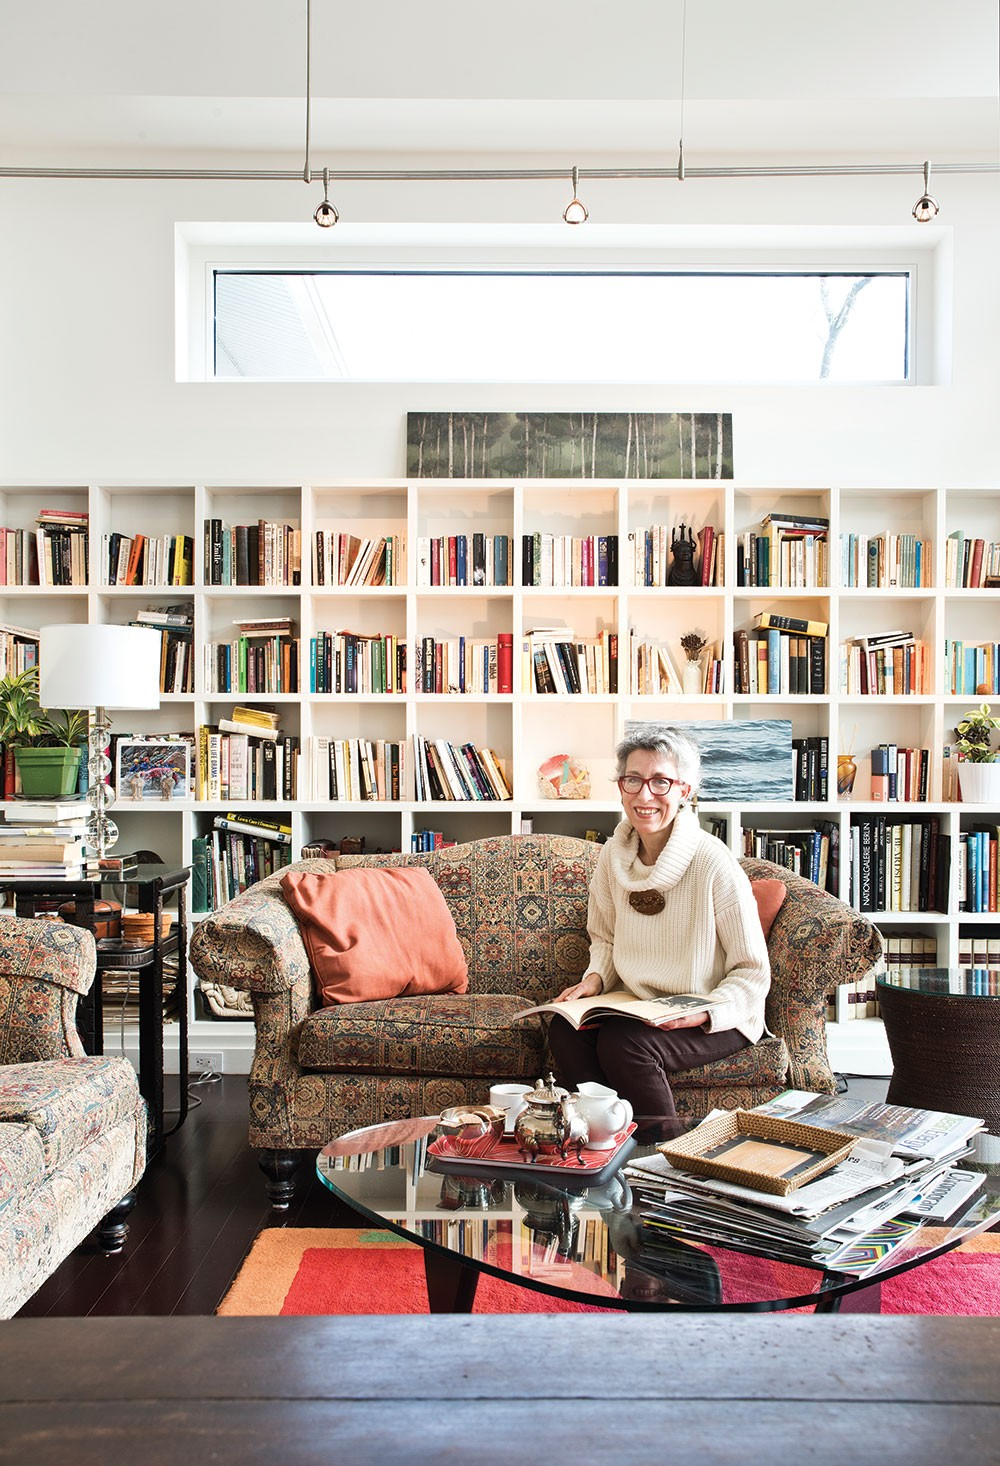 """Susan Meyer-Fitzsimmons in her living room. She and her husband Brian Fitzsimmons designed and built their carbon neutral home in Warwick. """"My life is my art, my art is my life; my convictions are my profession and my profession informs how I live—it's all one in the same."""" - DEBORAH DEGRAFFENREID"""